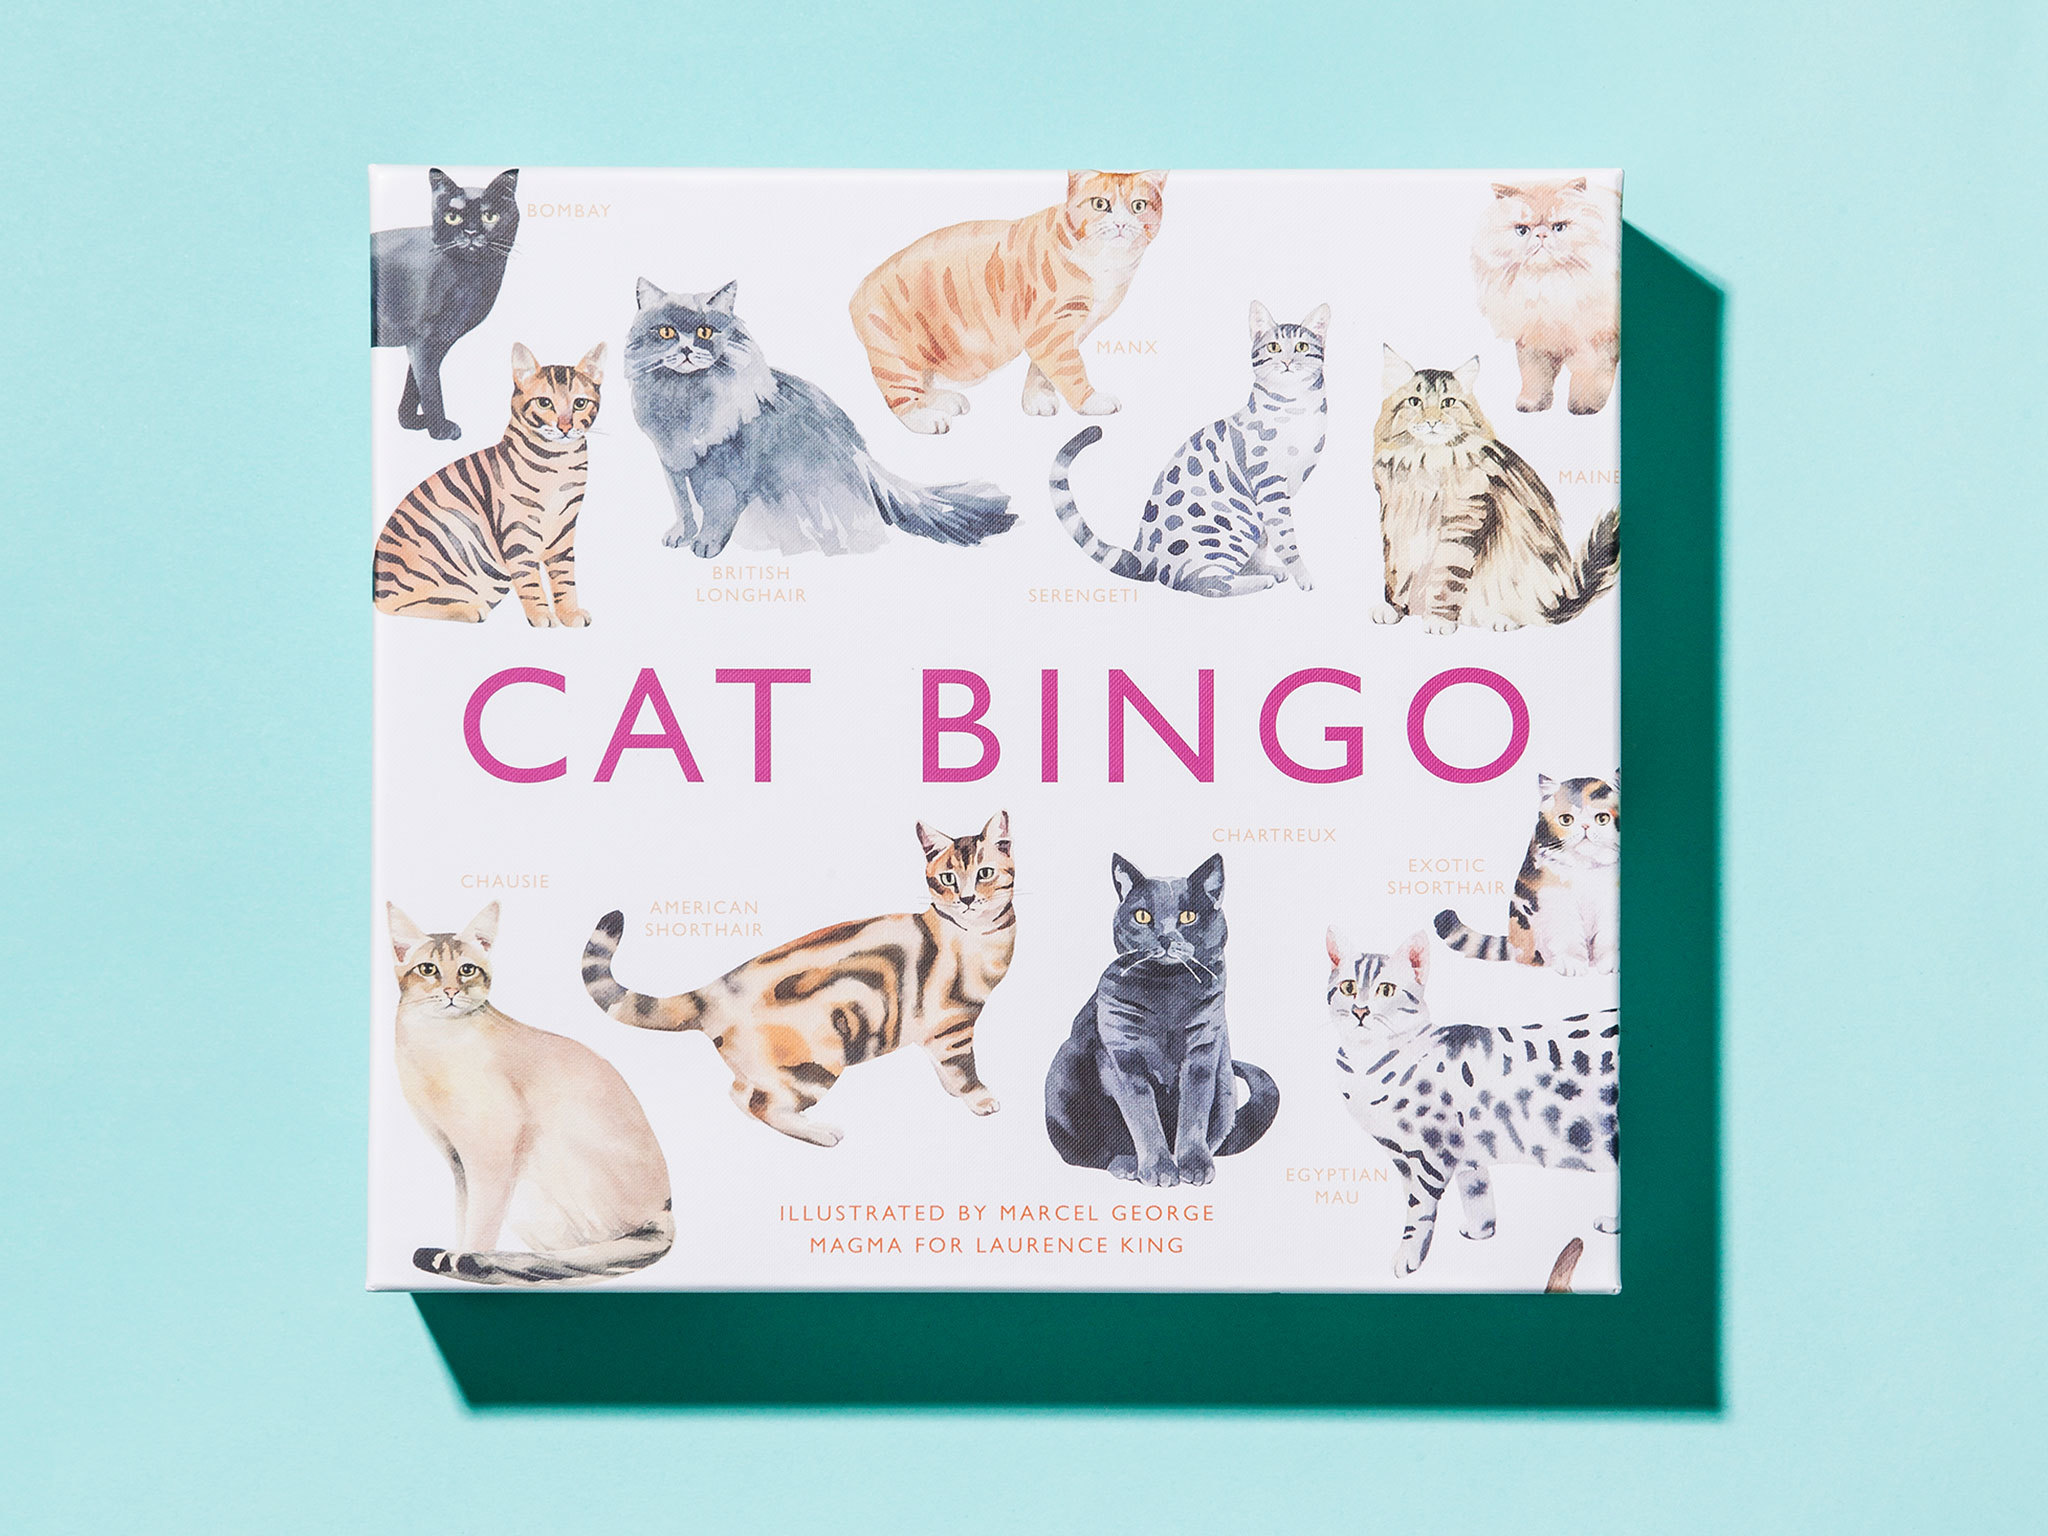 'Cat Bingo' book